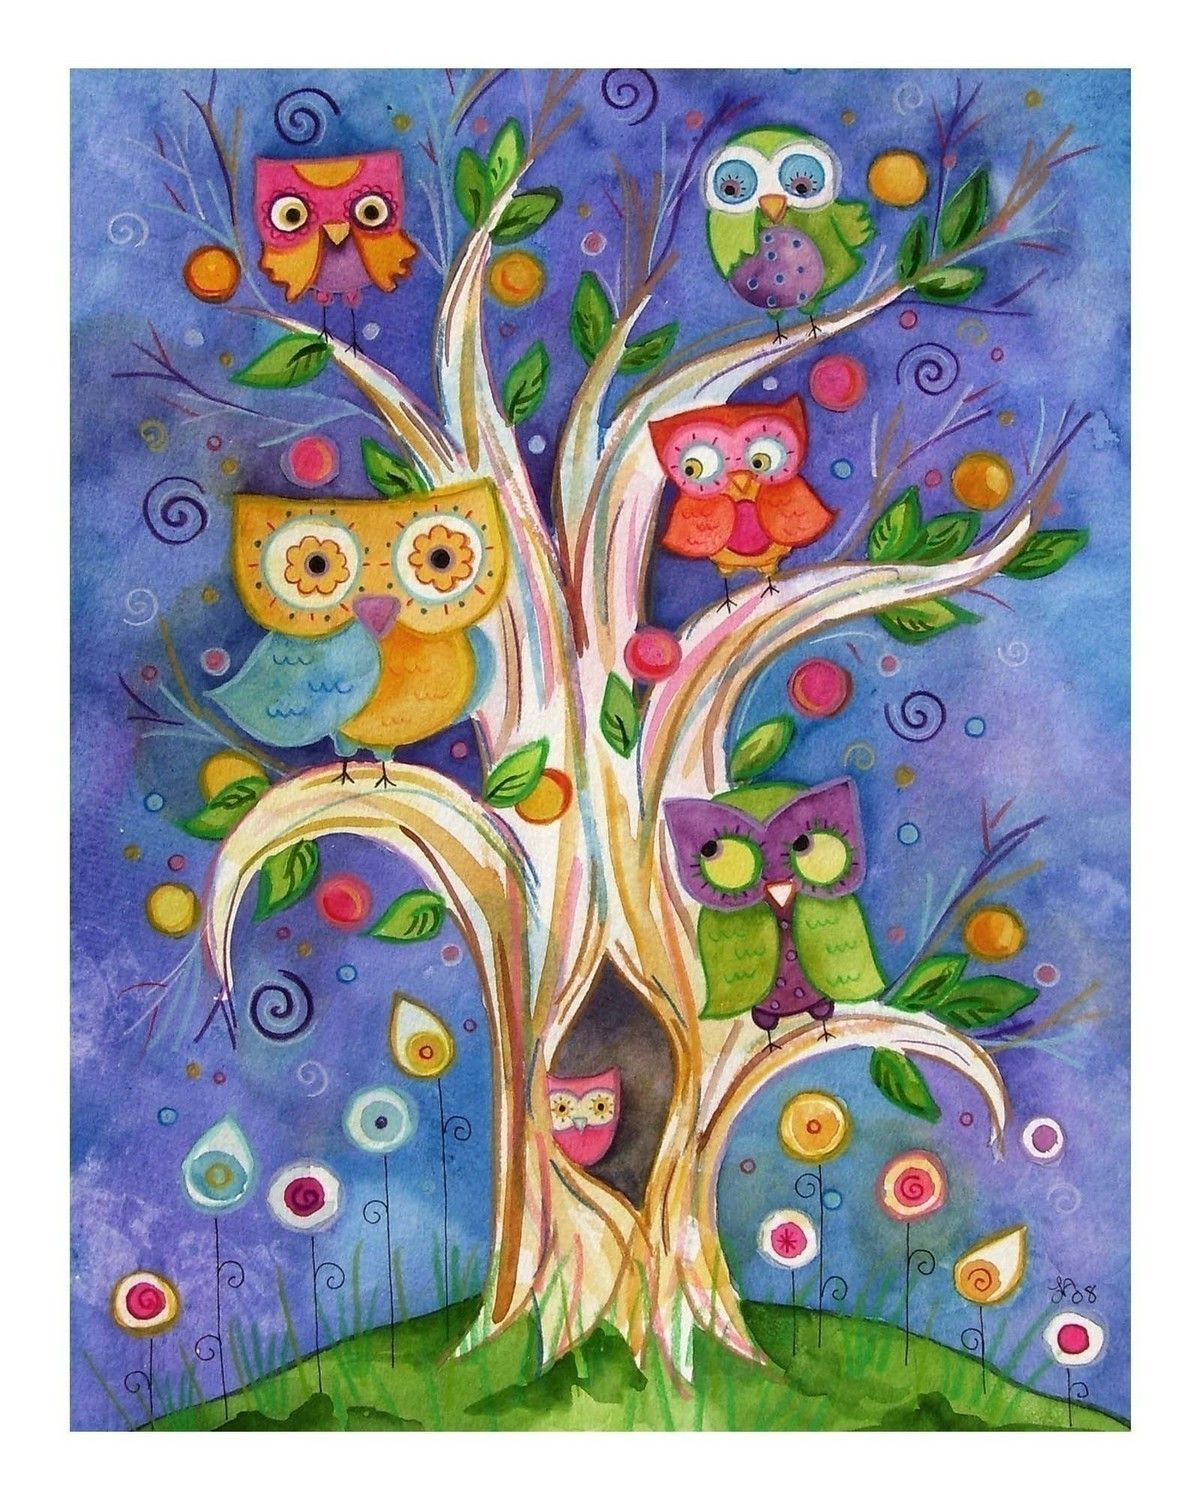 Serie owls 9 by Rocío Rivera